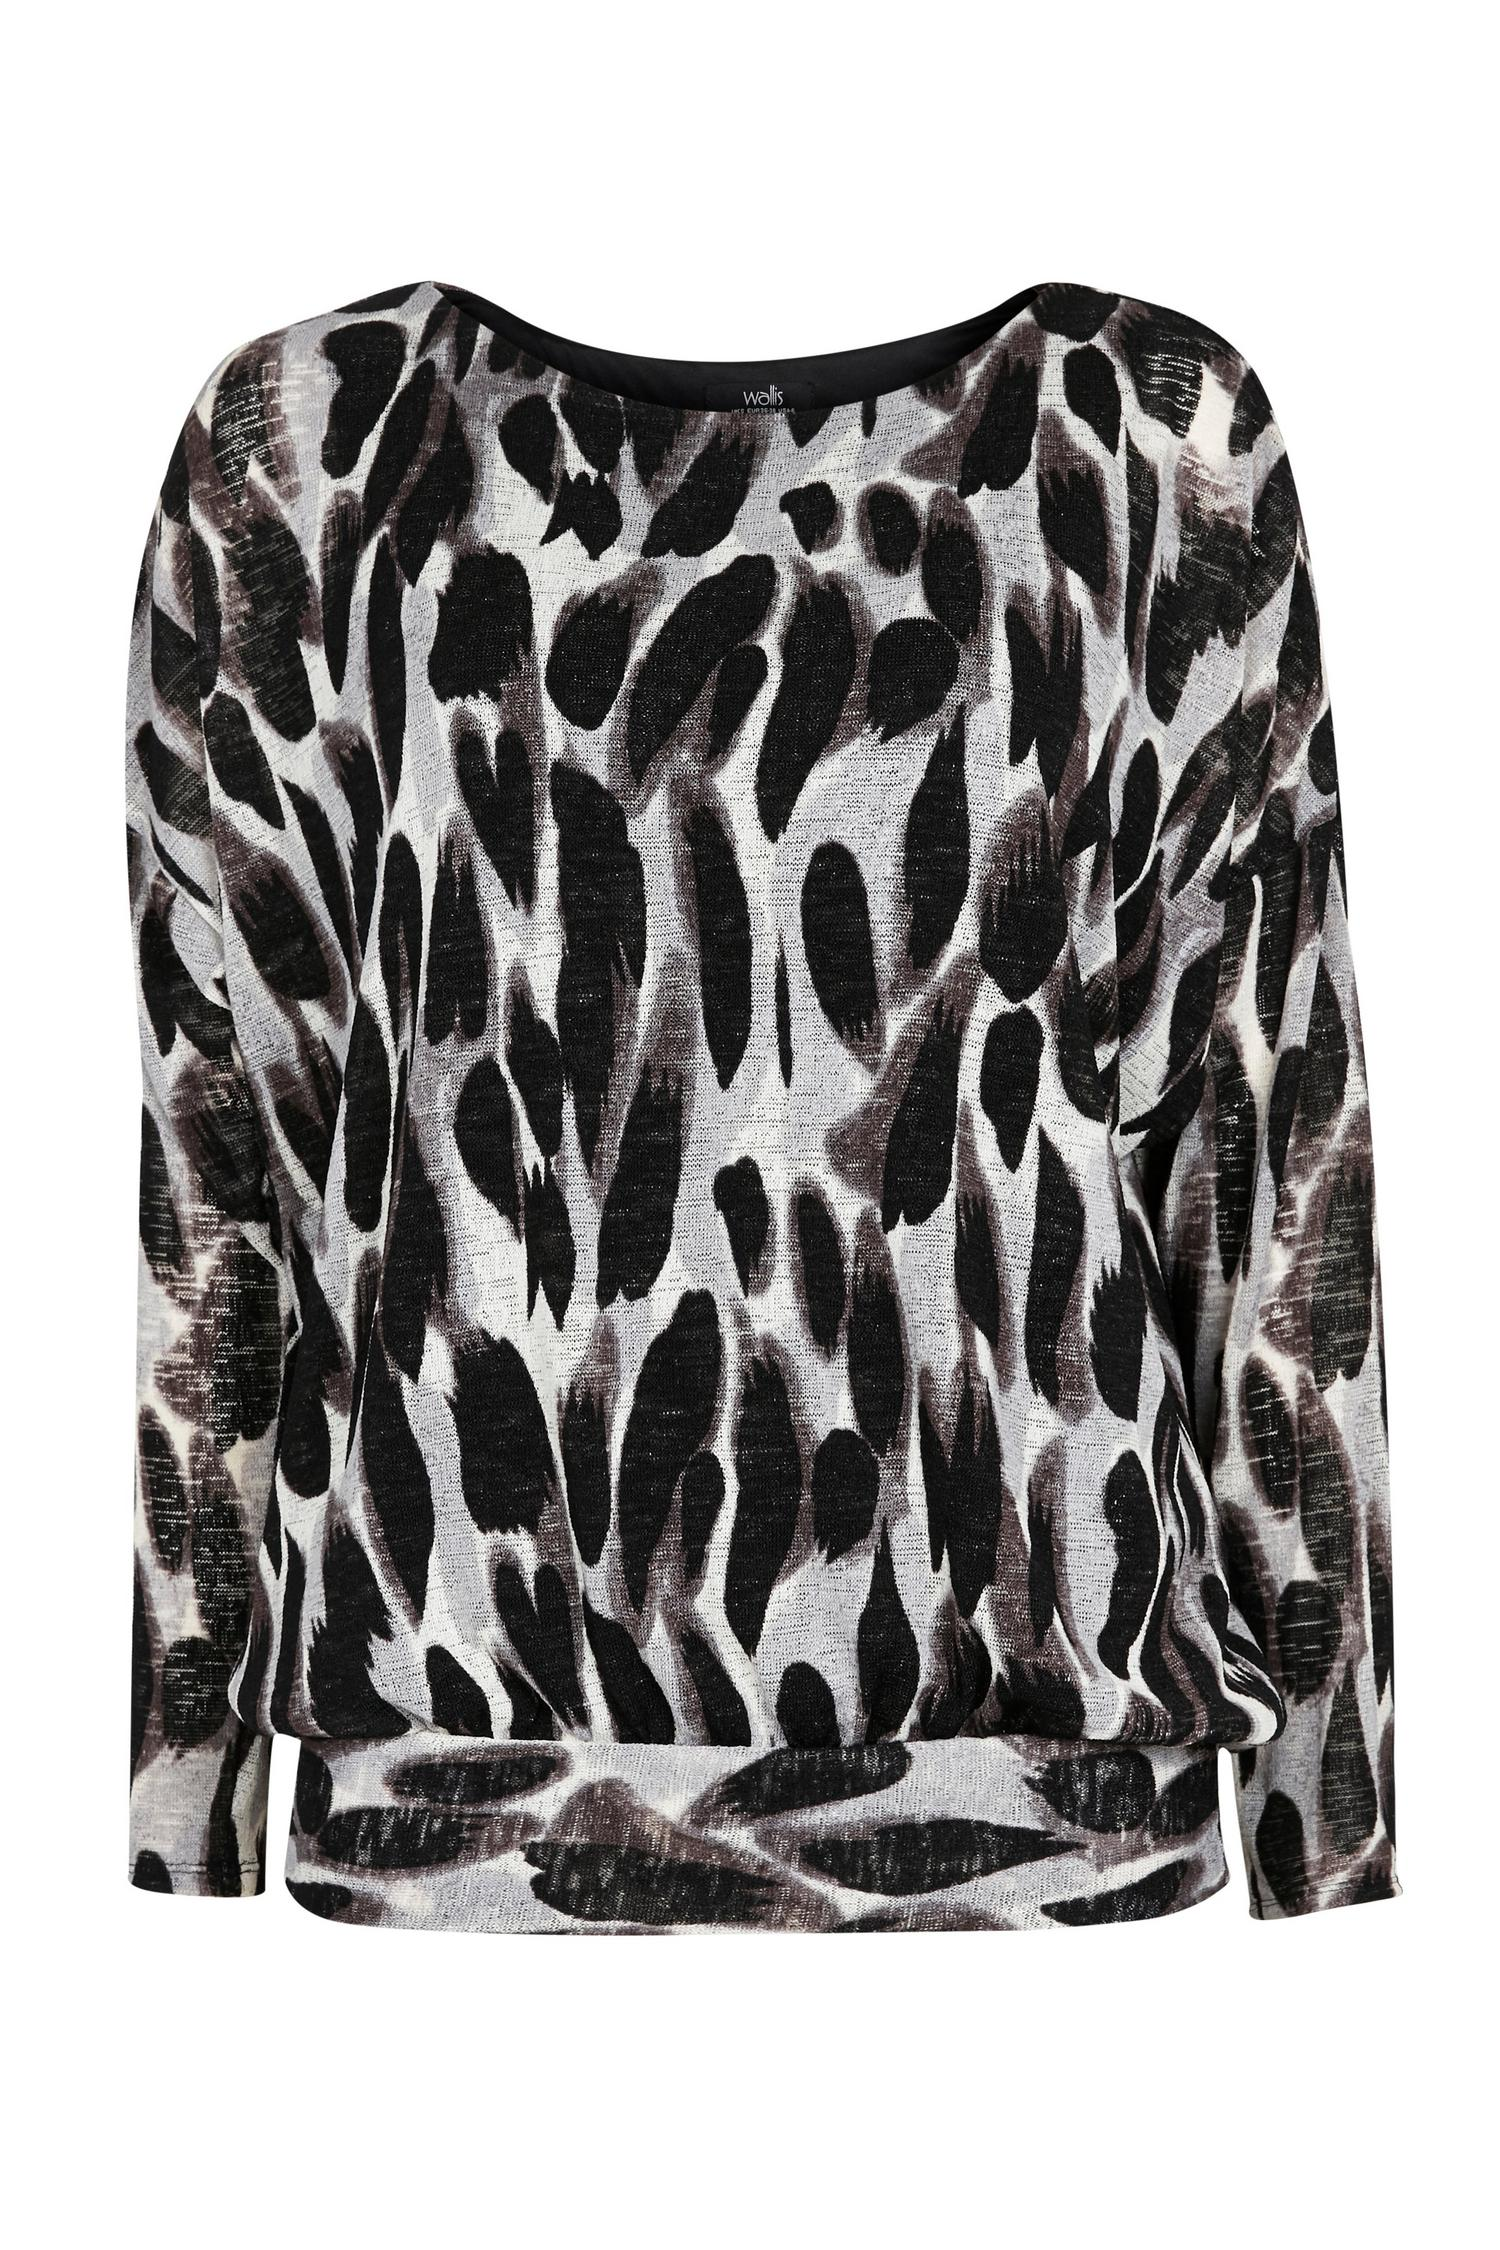 105 Black Animal Print Batwing Top image number 4